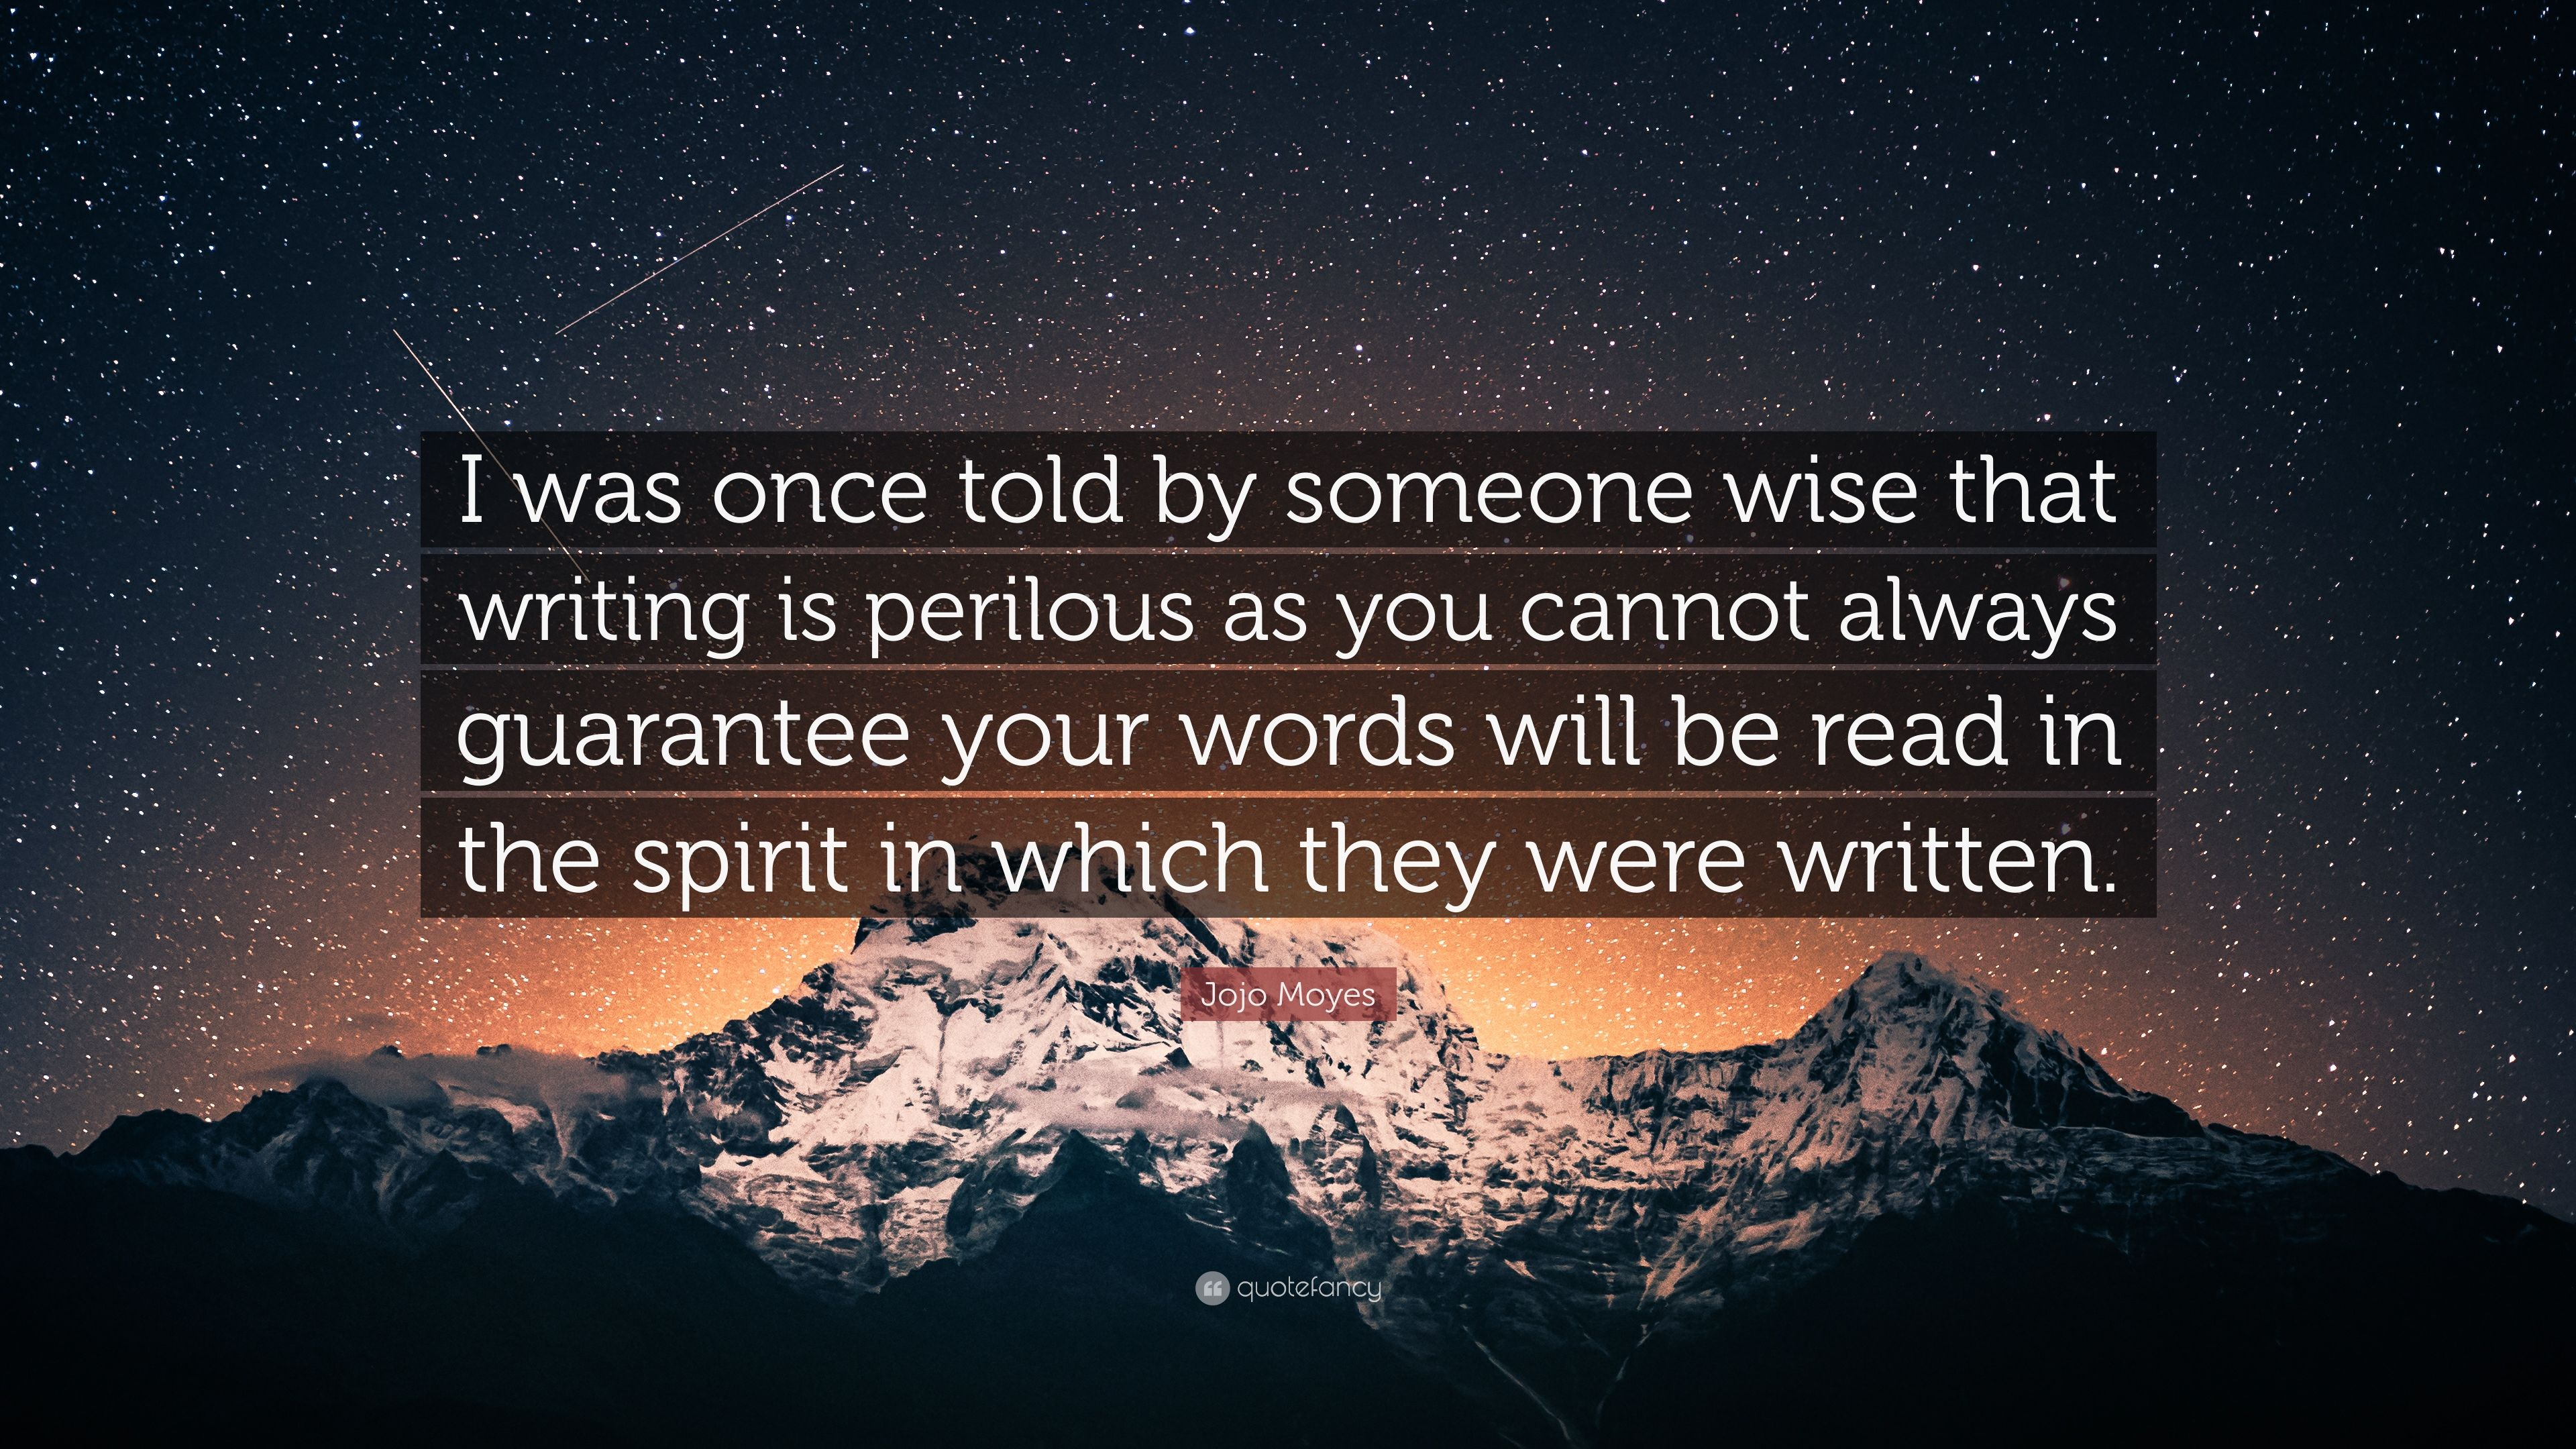 Jojo moyes quote i was once told by someone wise that writing is perilous